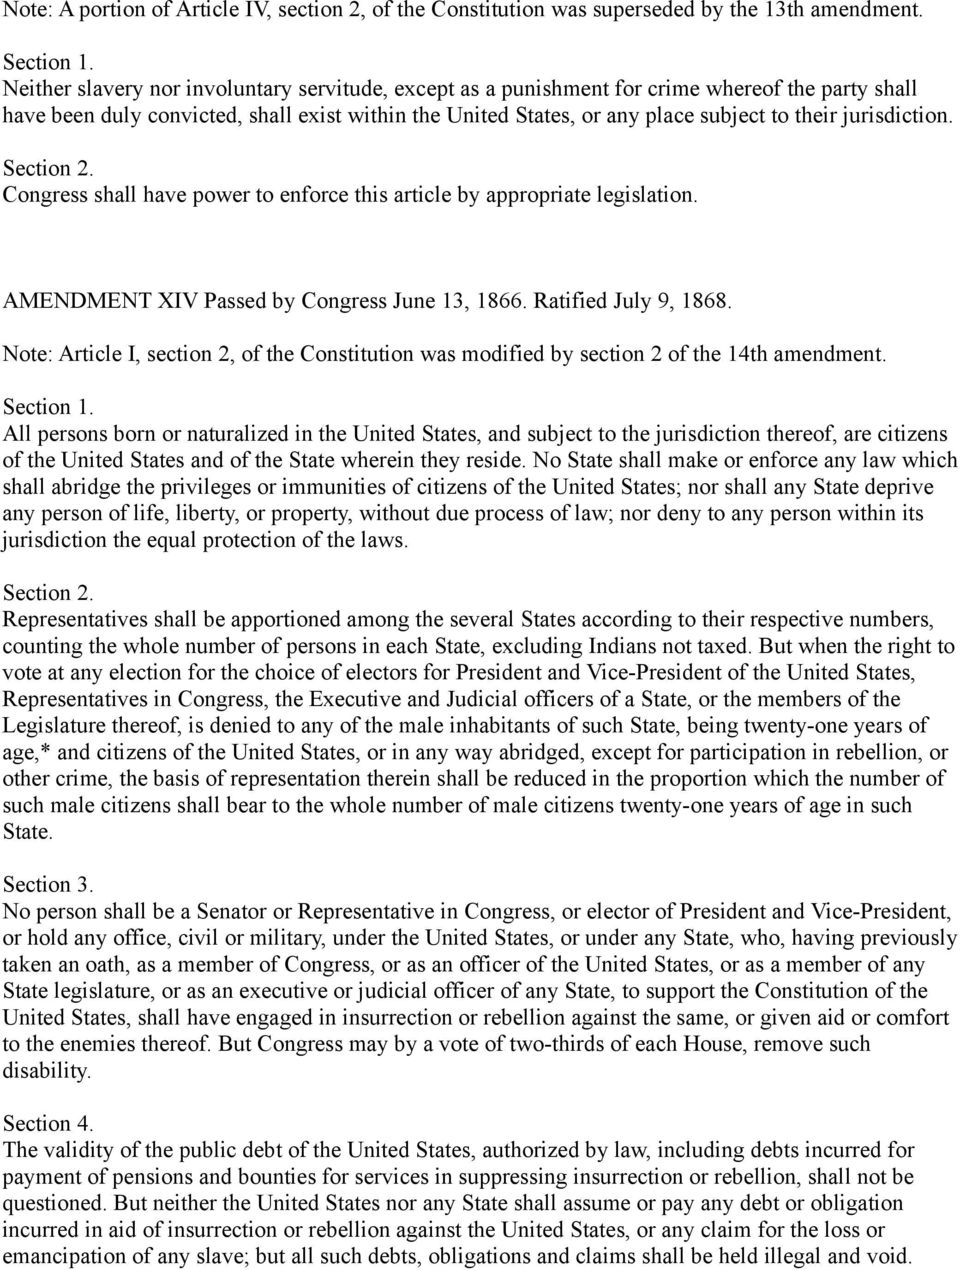 jurisdiction. Congress shall have power to enforce this article by appropriate legislation. AMENDMENT XIV Passed by Congress June 13, 1866. Ratified July 9, 1868.